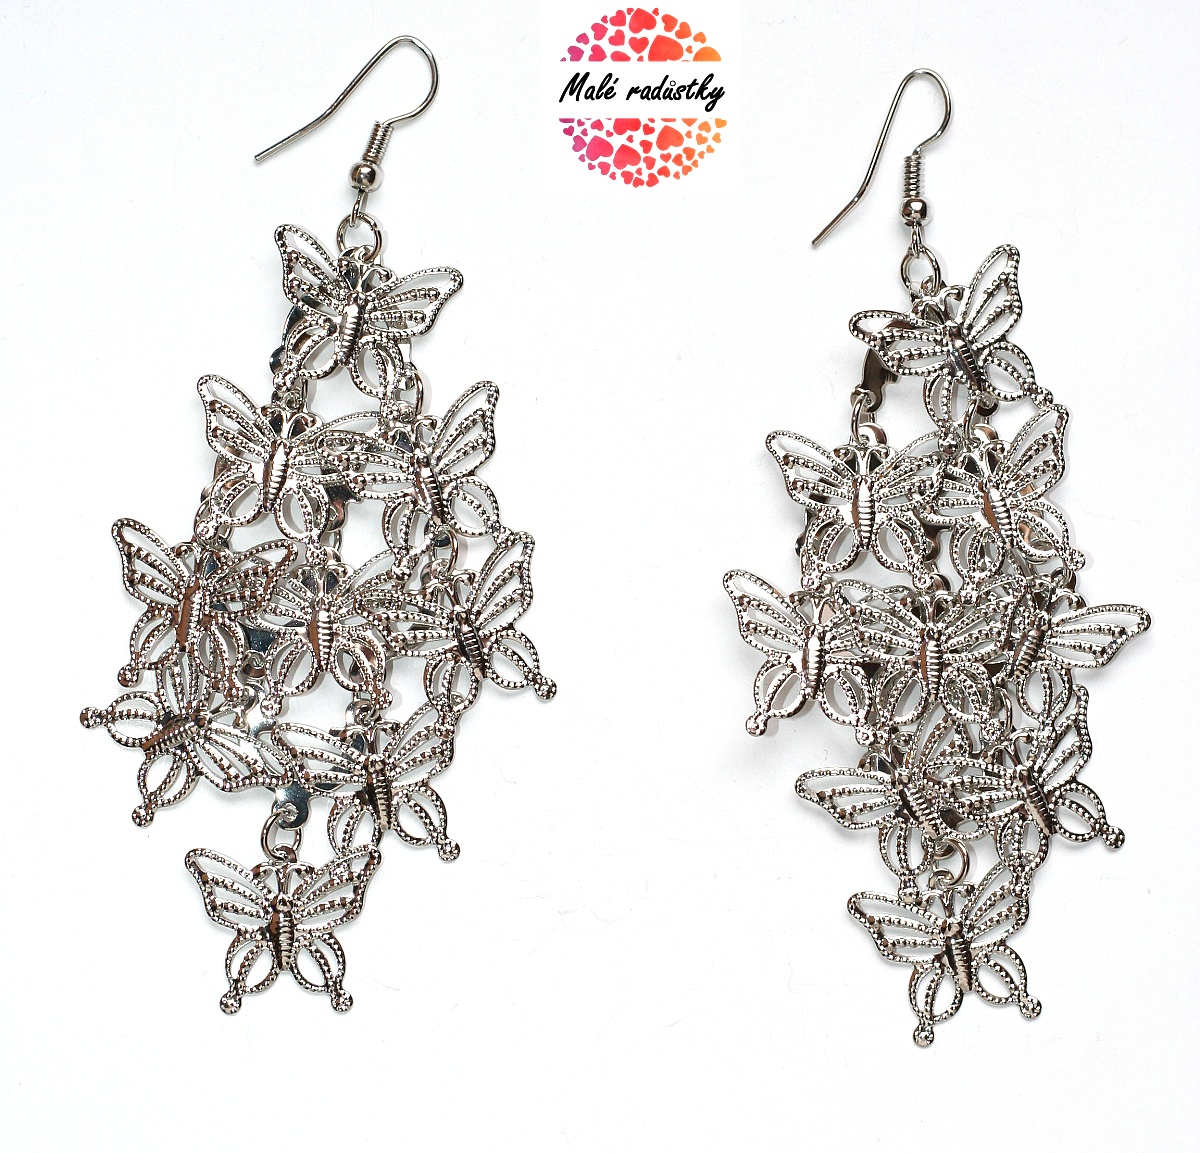 Náušnice Fashion Jewerly - motýlci 109